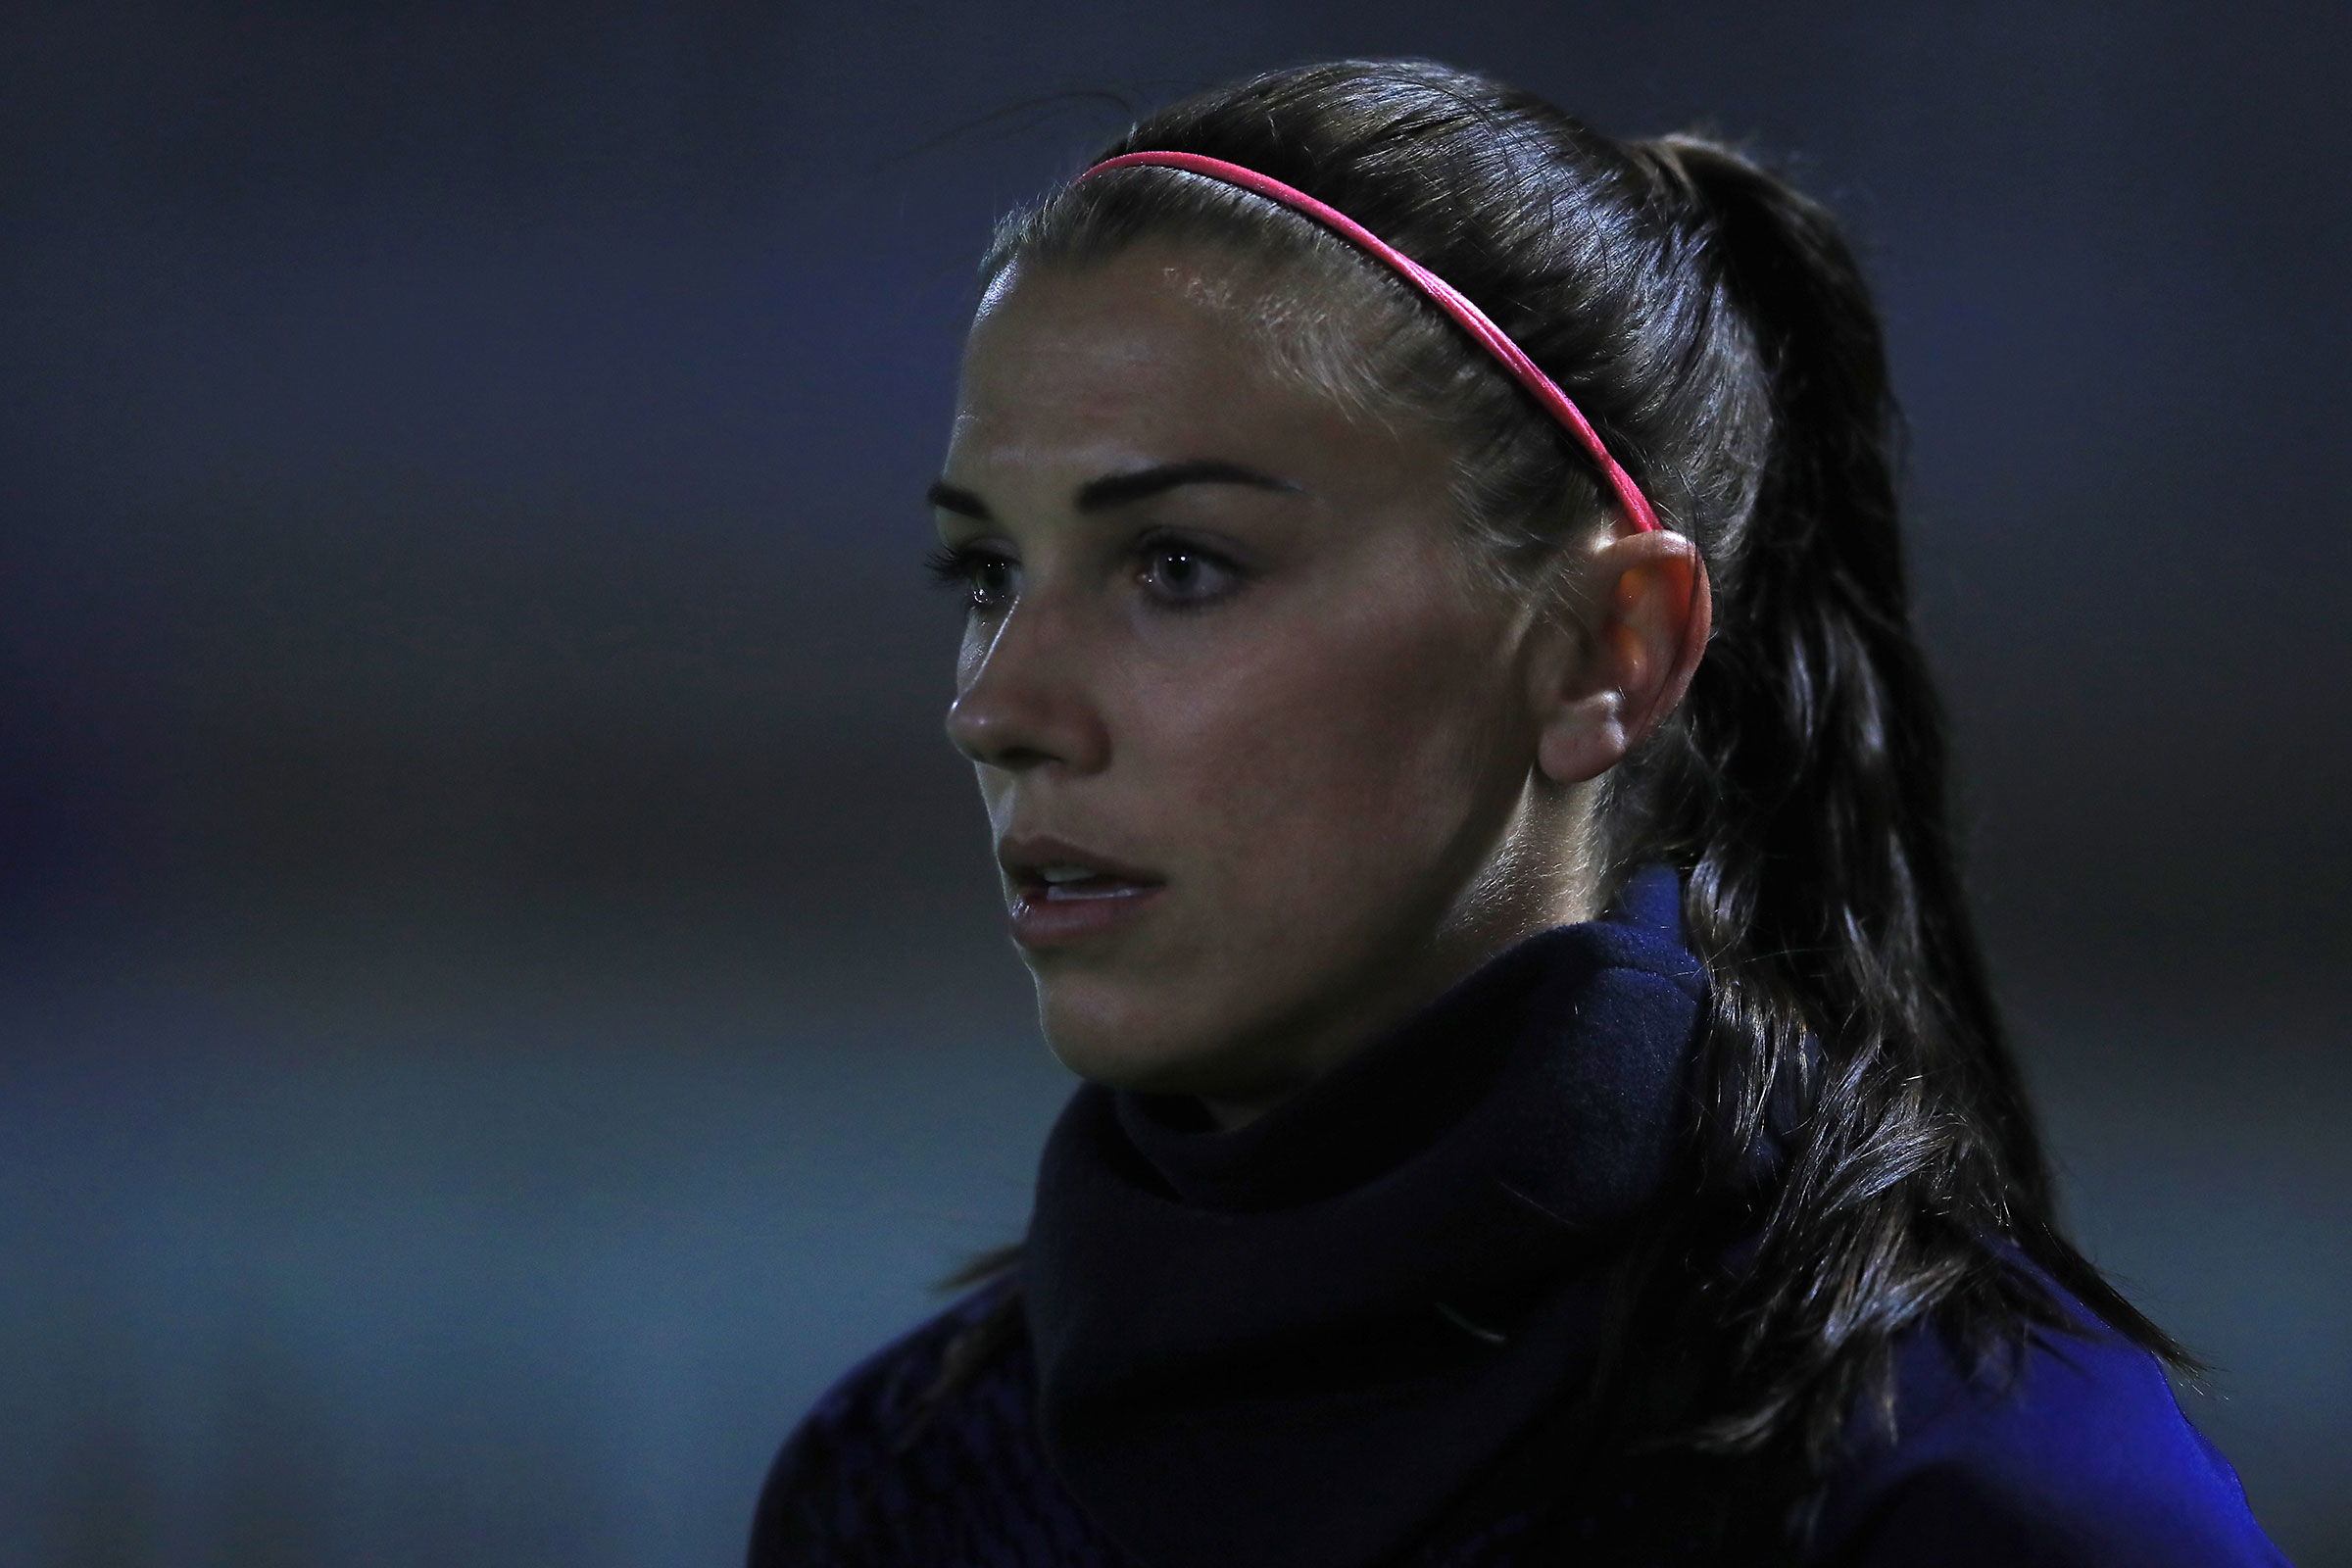 Tottenham Hotspur's Alex Morgan warming up before the Continental Cup match at Meadow Park, London.